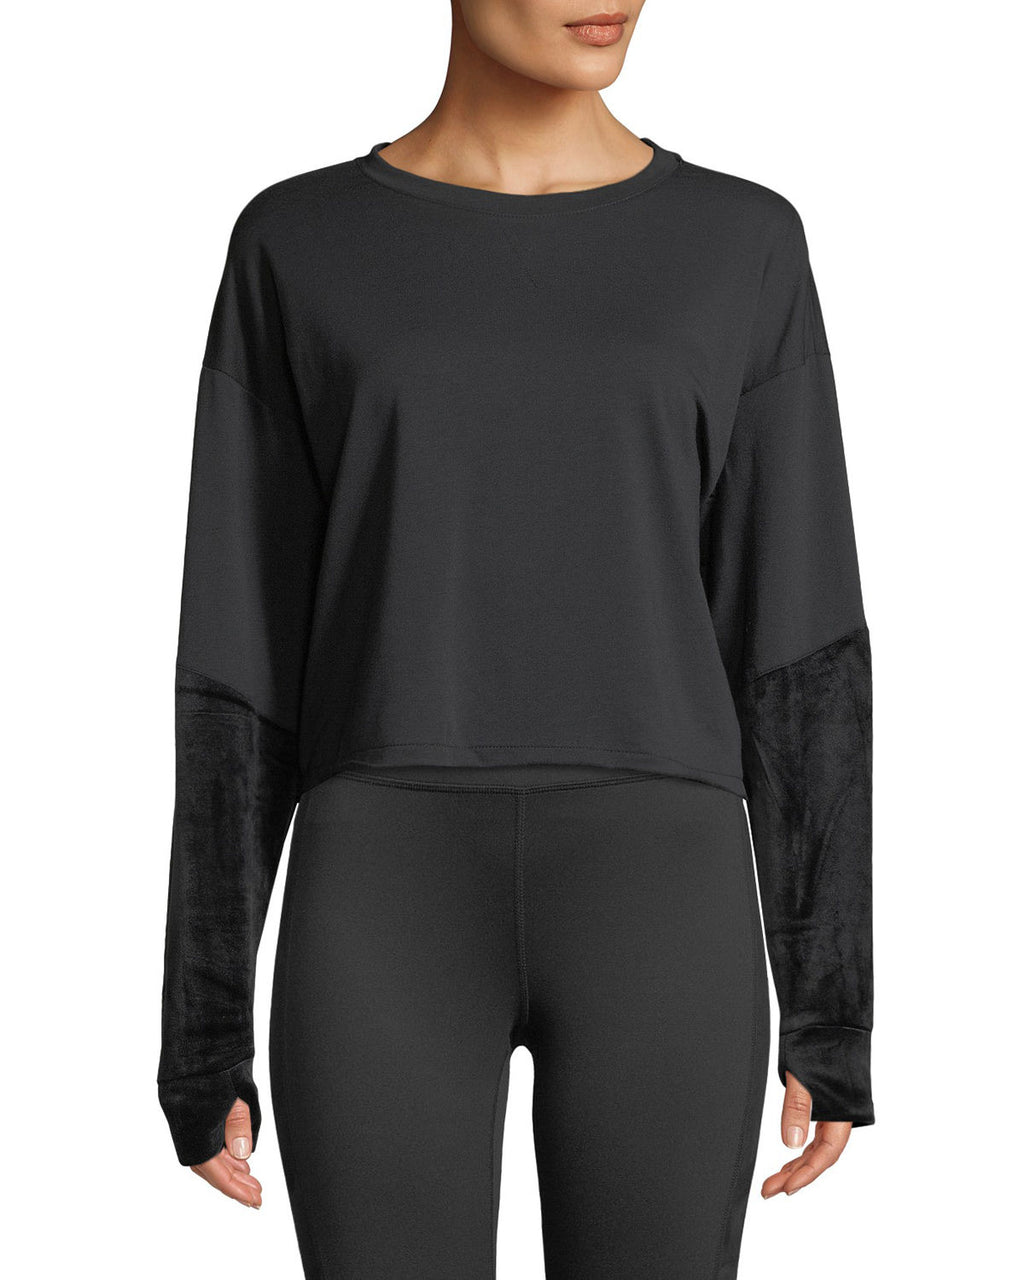 Splendid Velvet Sleeve Crop Sweatshirt in Black - Dalton Boutique